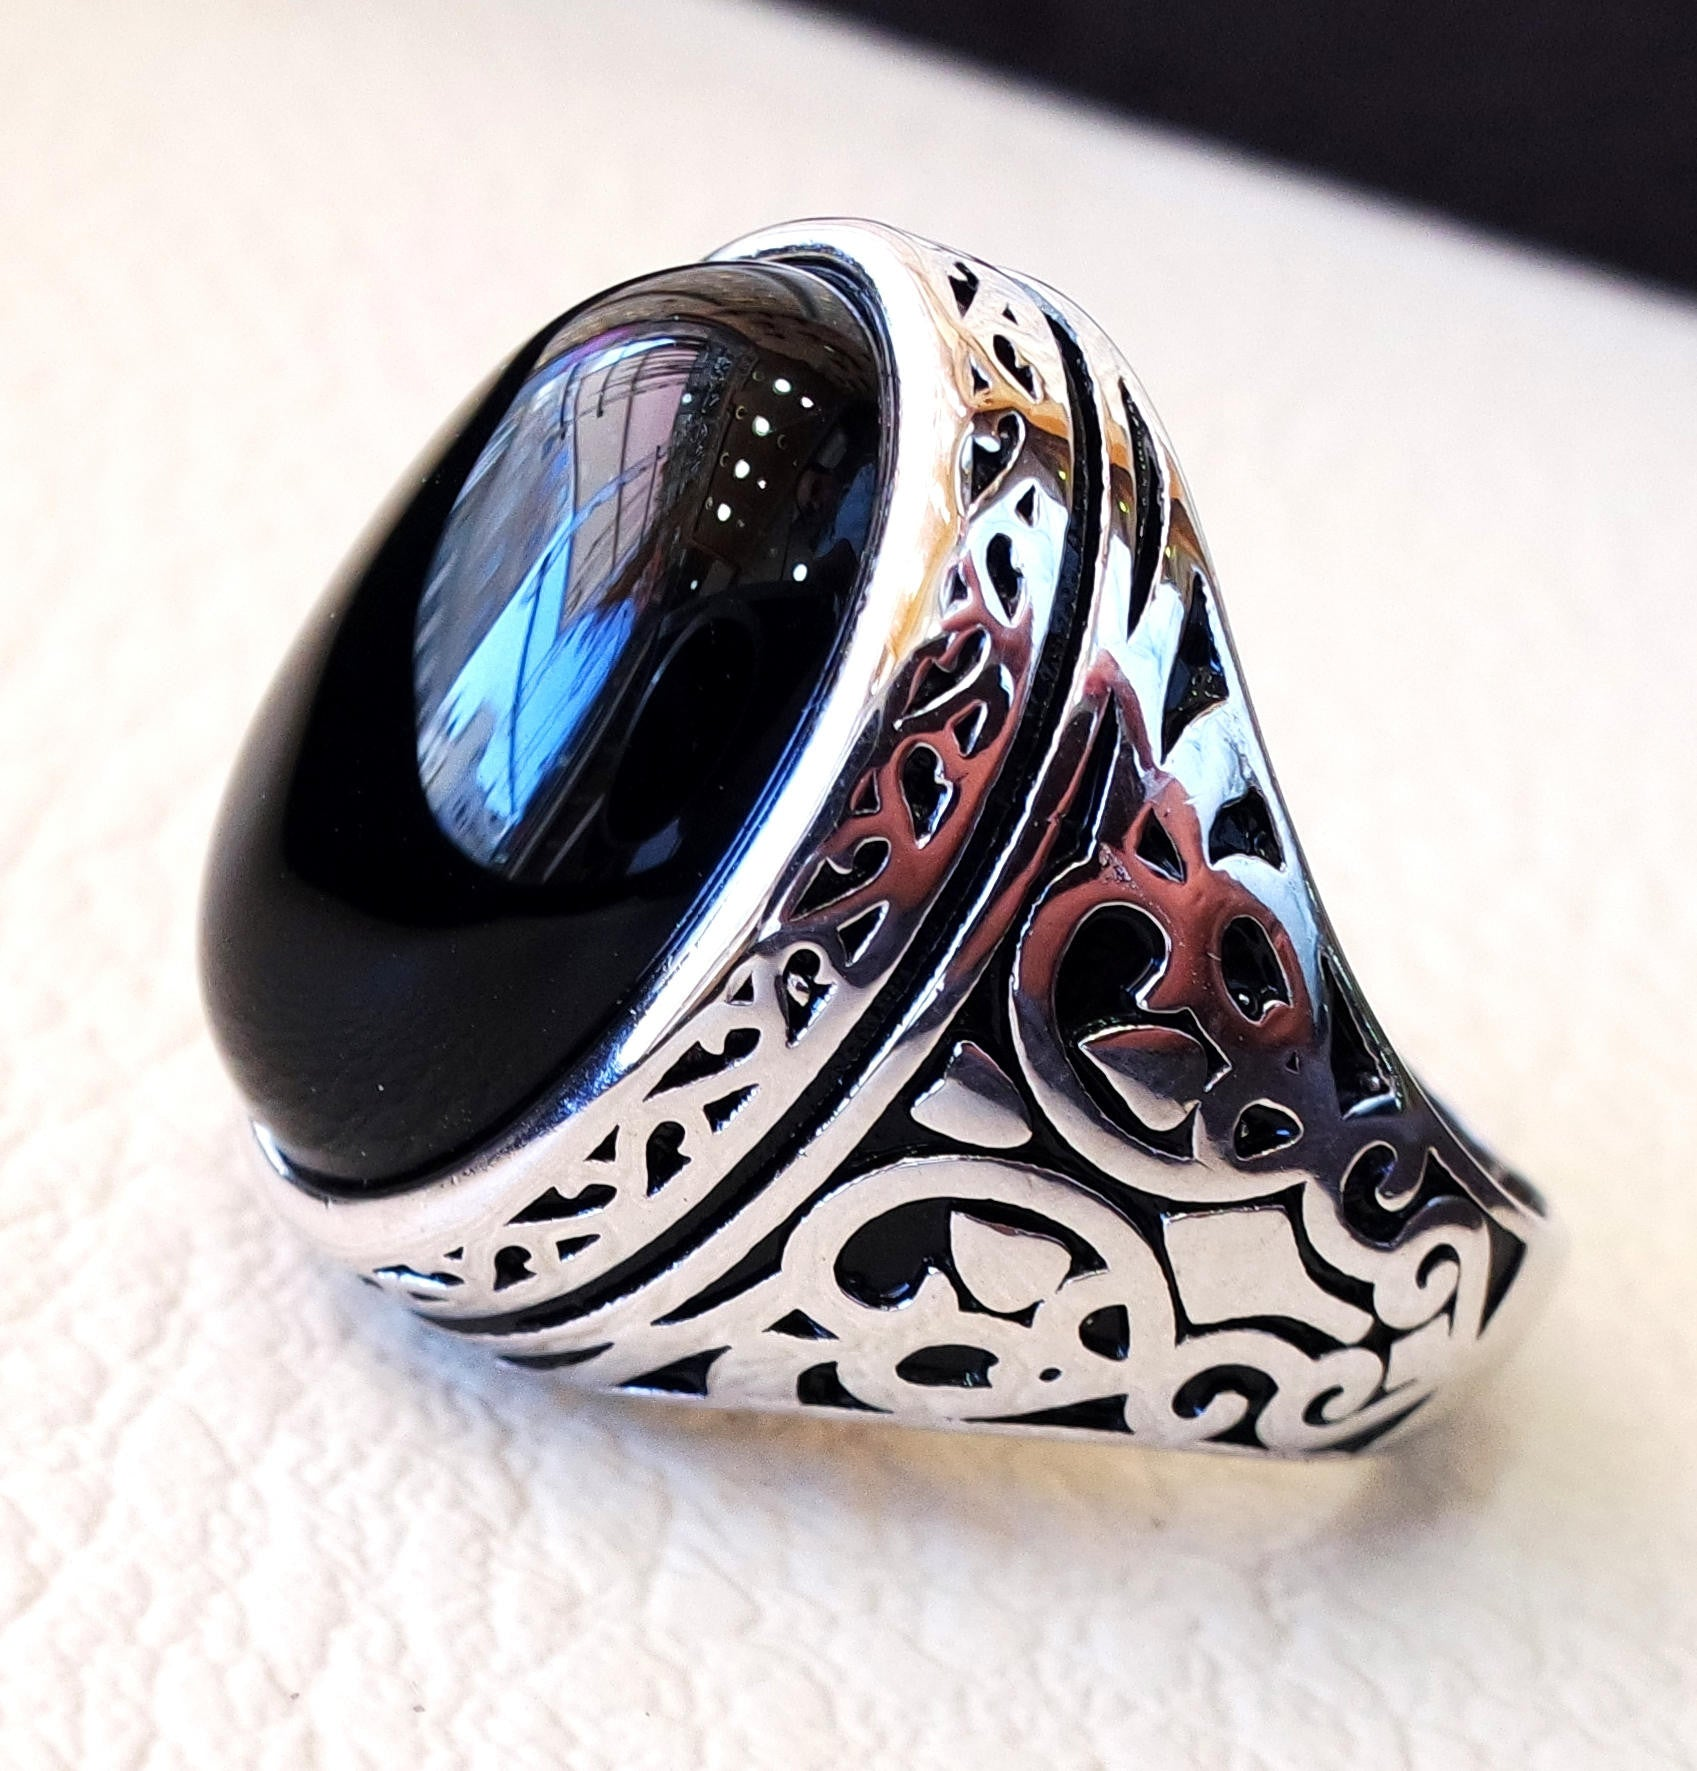 man ring sterling silver 925 all sizes onyx natural agate semi precious cabochon black gem arabic turkey antique middle eastern jewelry